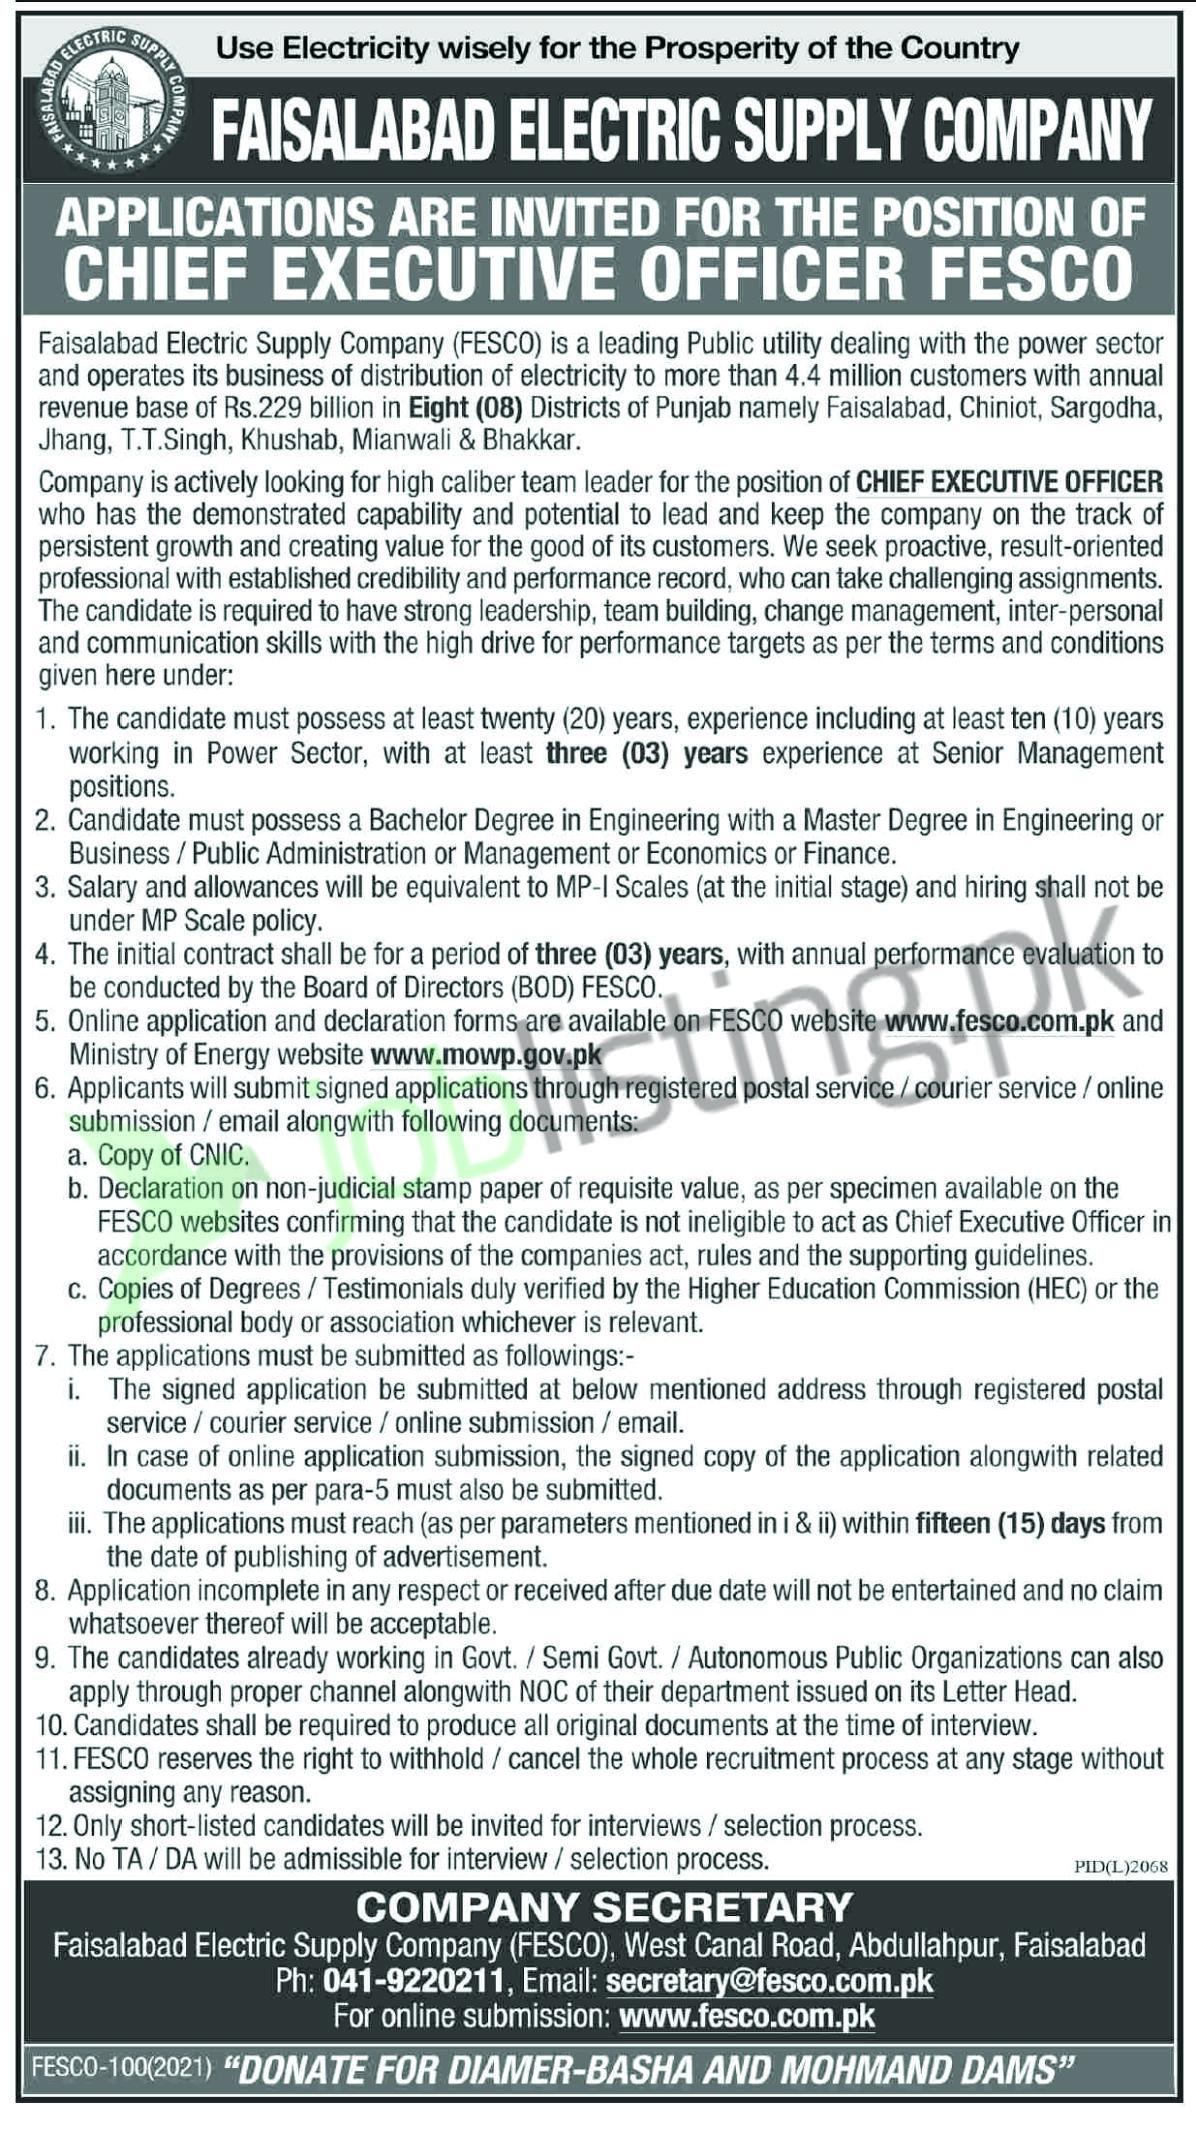 Chief Executive Officer jobs in Faisalabad at FESCO